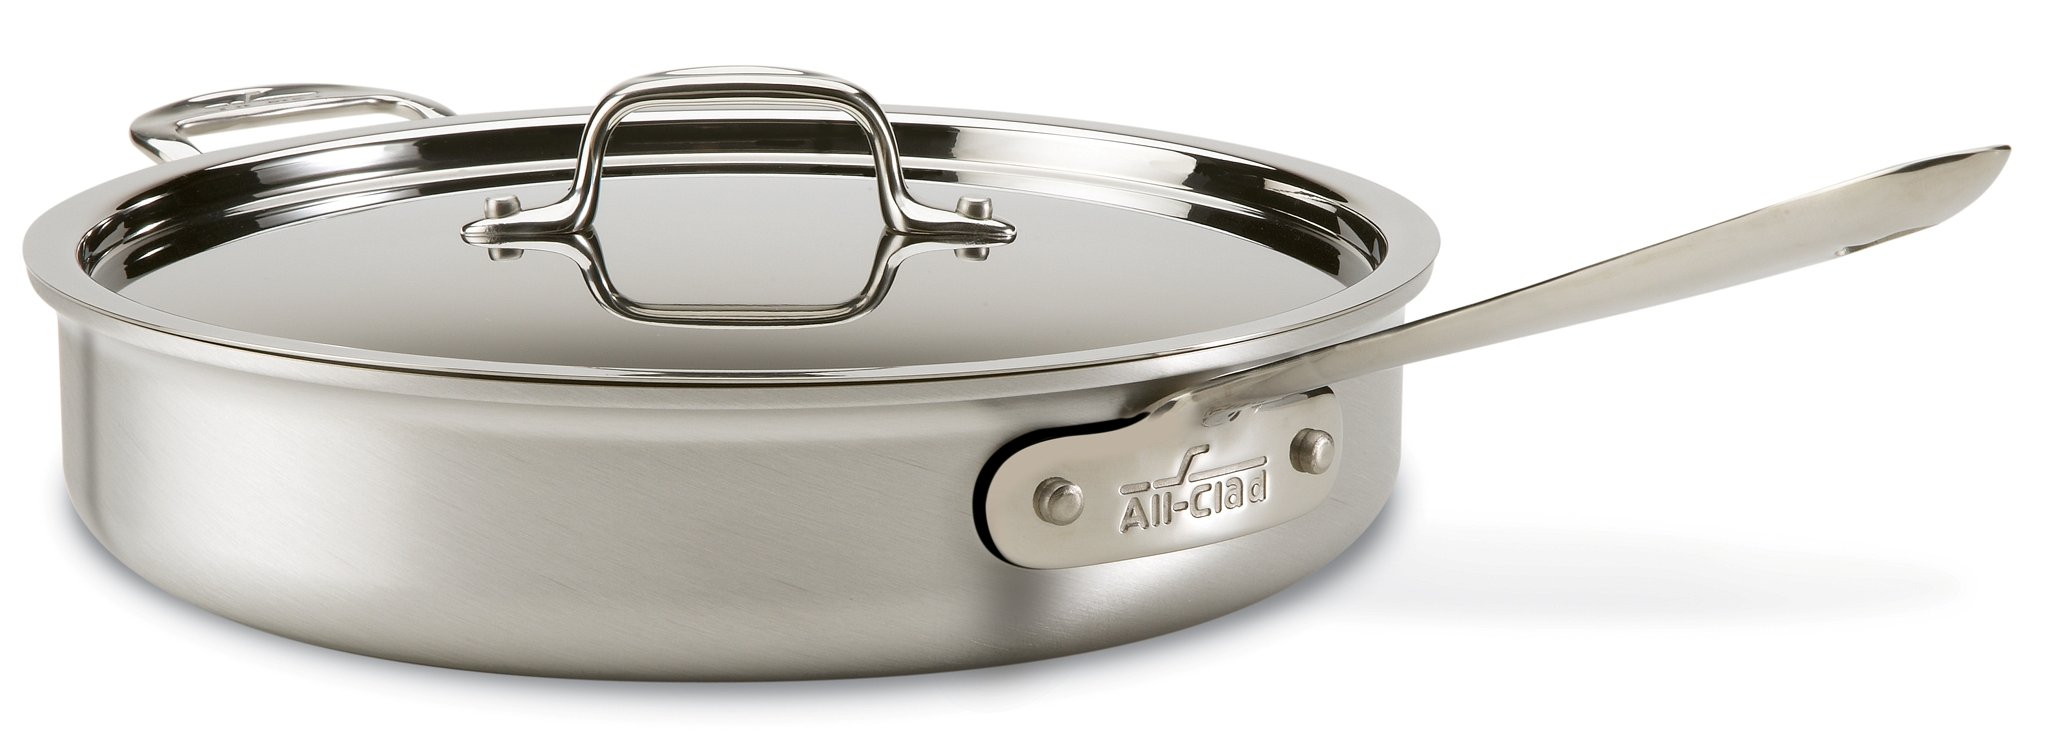 All-Clad 700362 MC2 Professional Master Chef 2 Stainless Steel Bi-Ply Bonded Oven Safe PFOA Free Cookware Set, 10-Piece, Silver by All-Clad (Image #5)